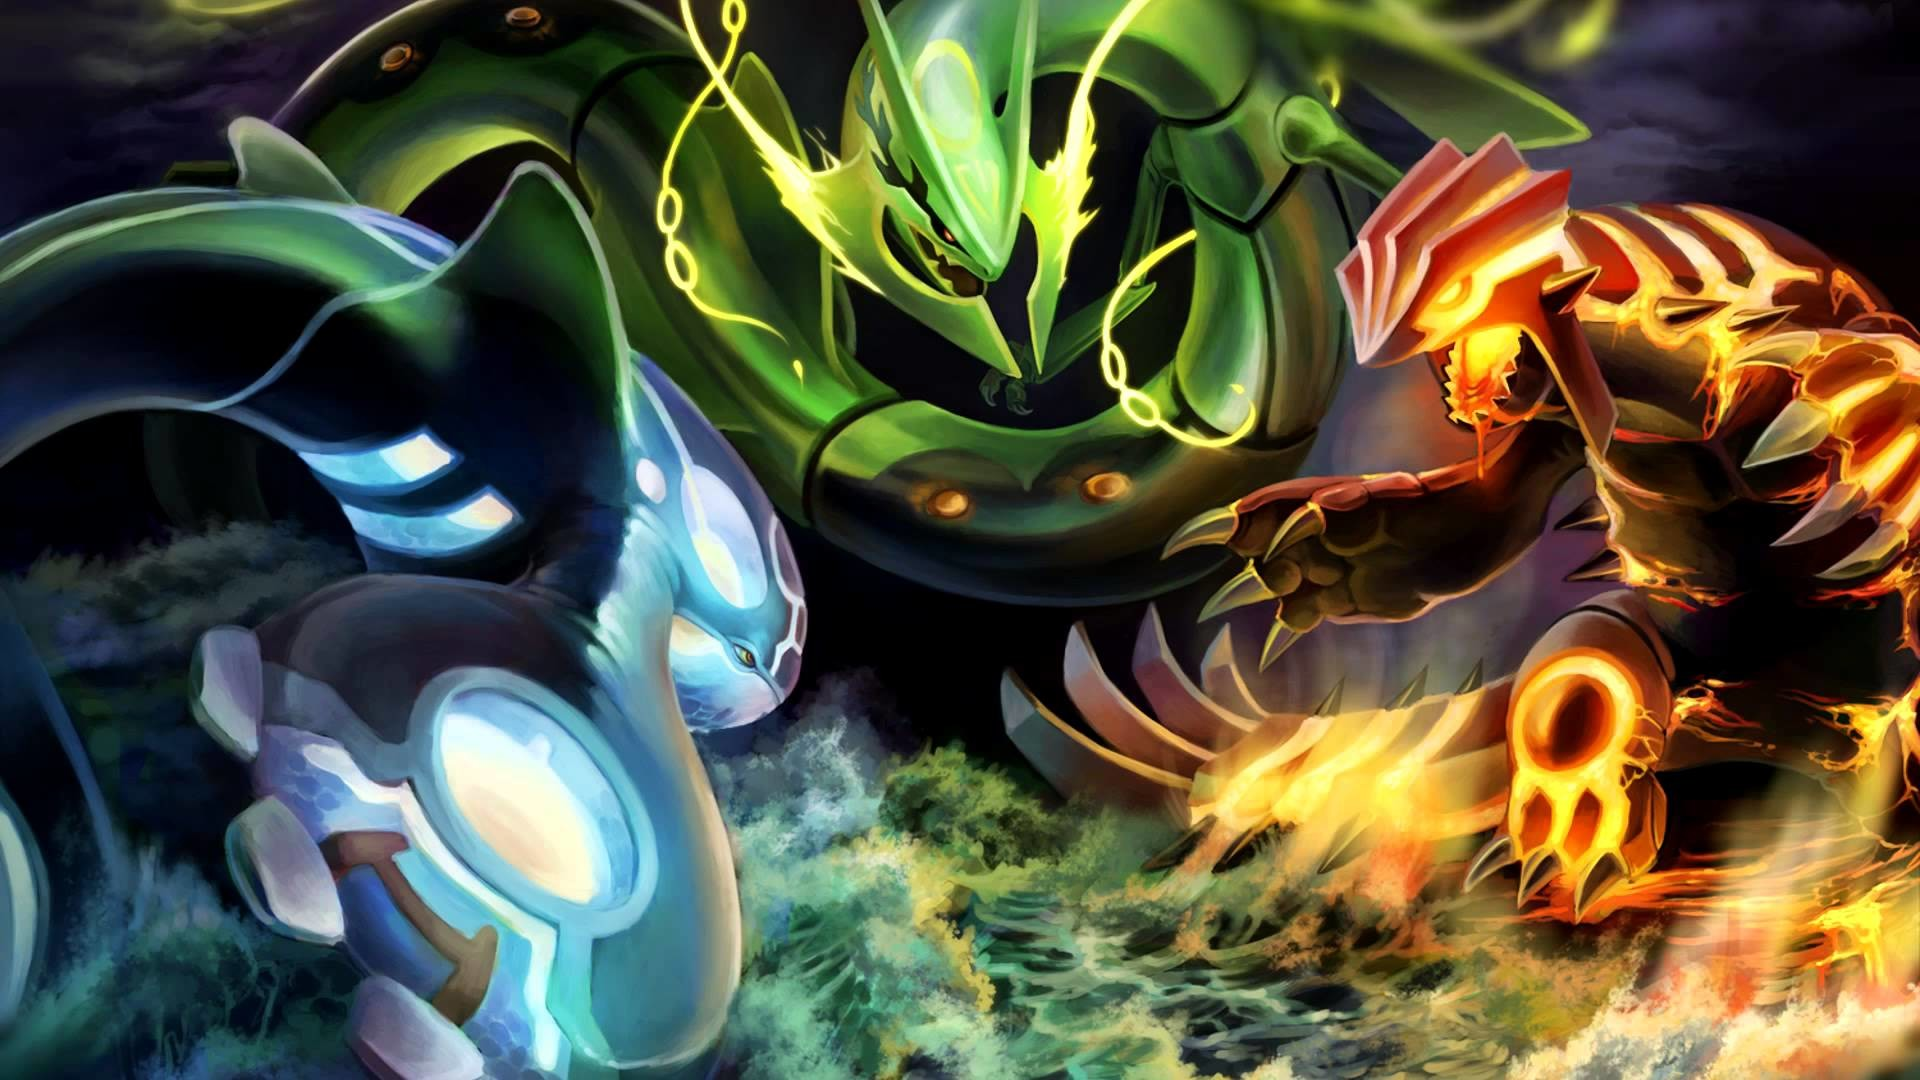 1920x1080 Pokemon Legendary Wallpaper For Android Is Cool Wallpapers